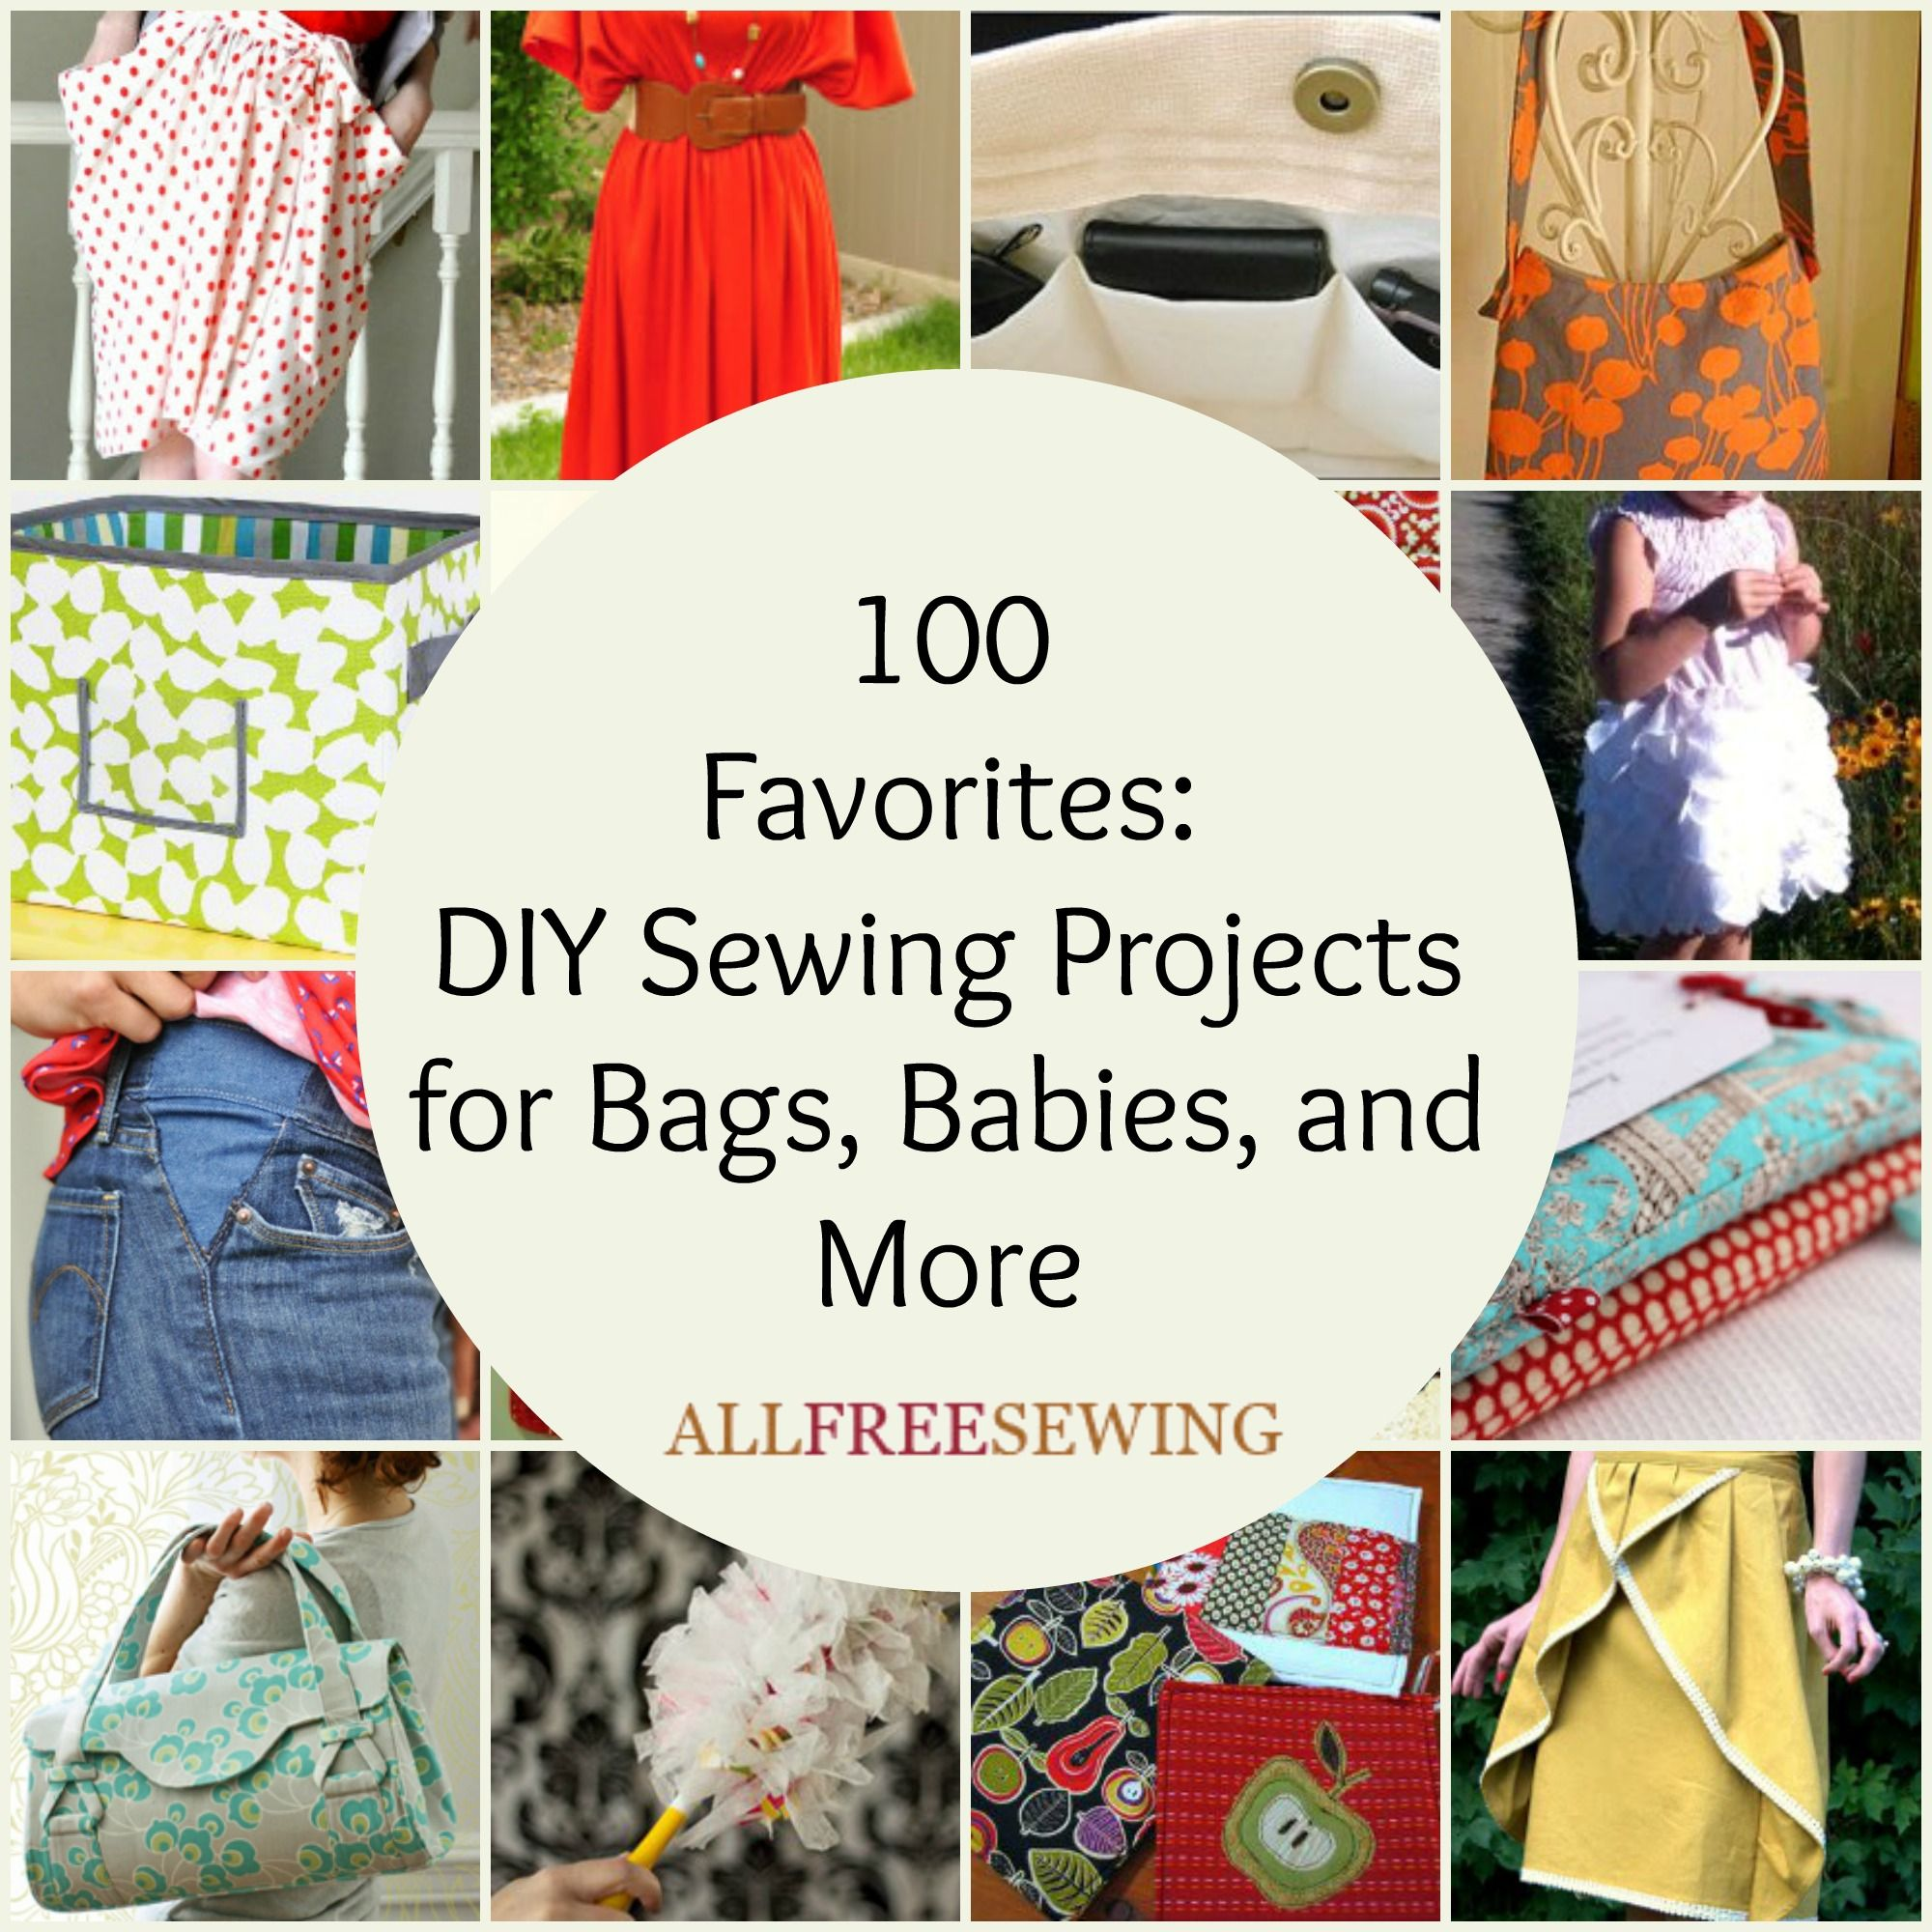 100 favorites diy sewing projects for bags babies and more 100 favorites diy sewing projects for bags babies and more solutioingenieria Images